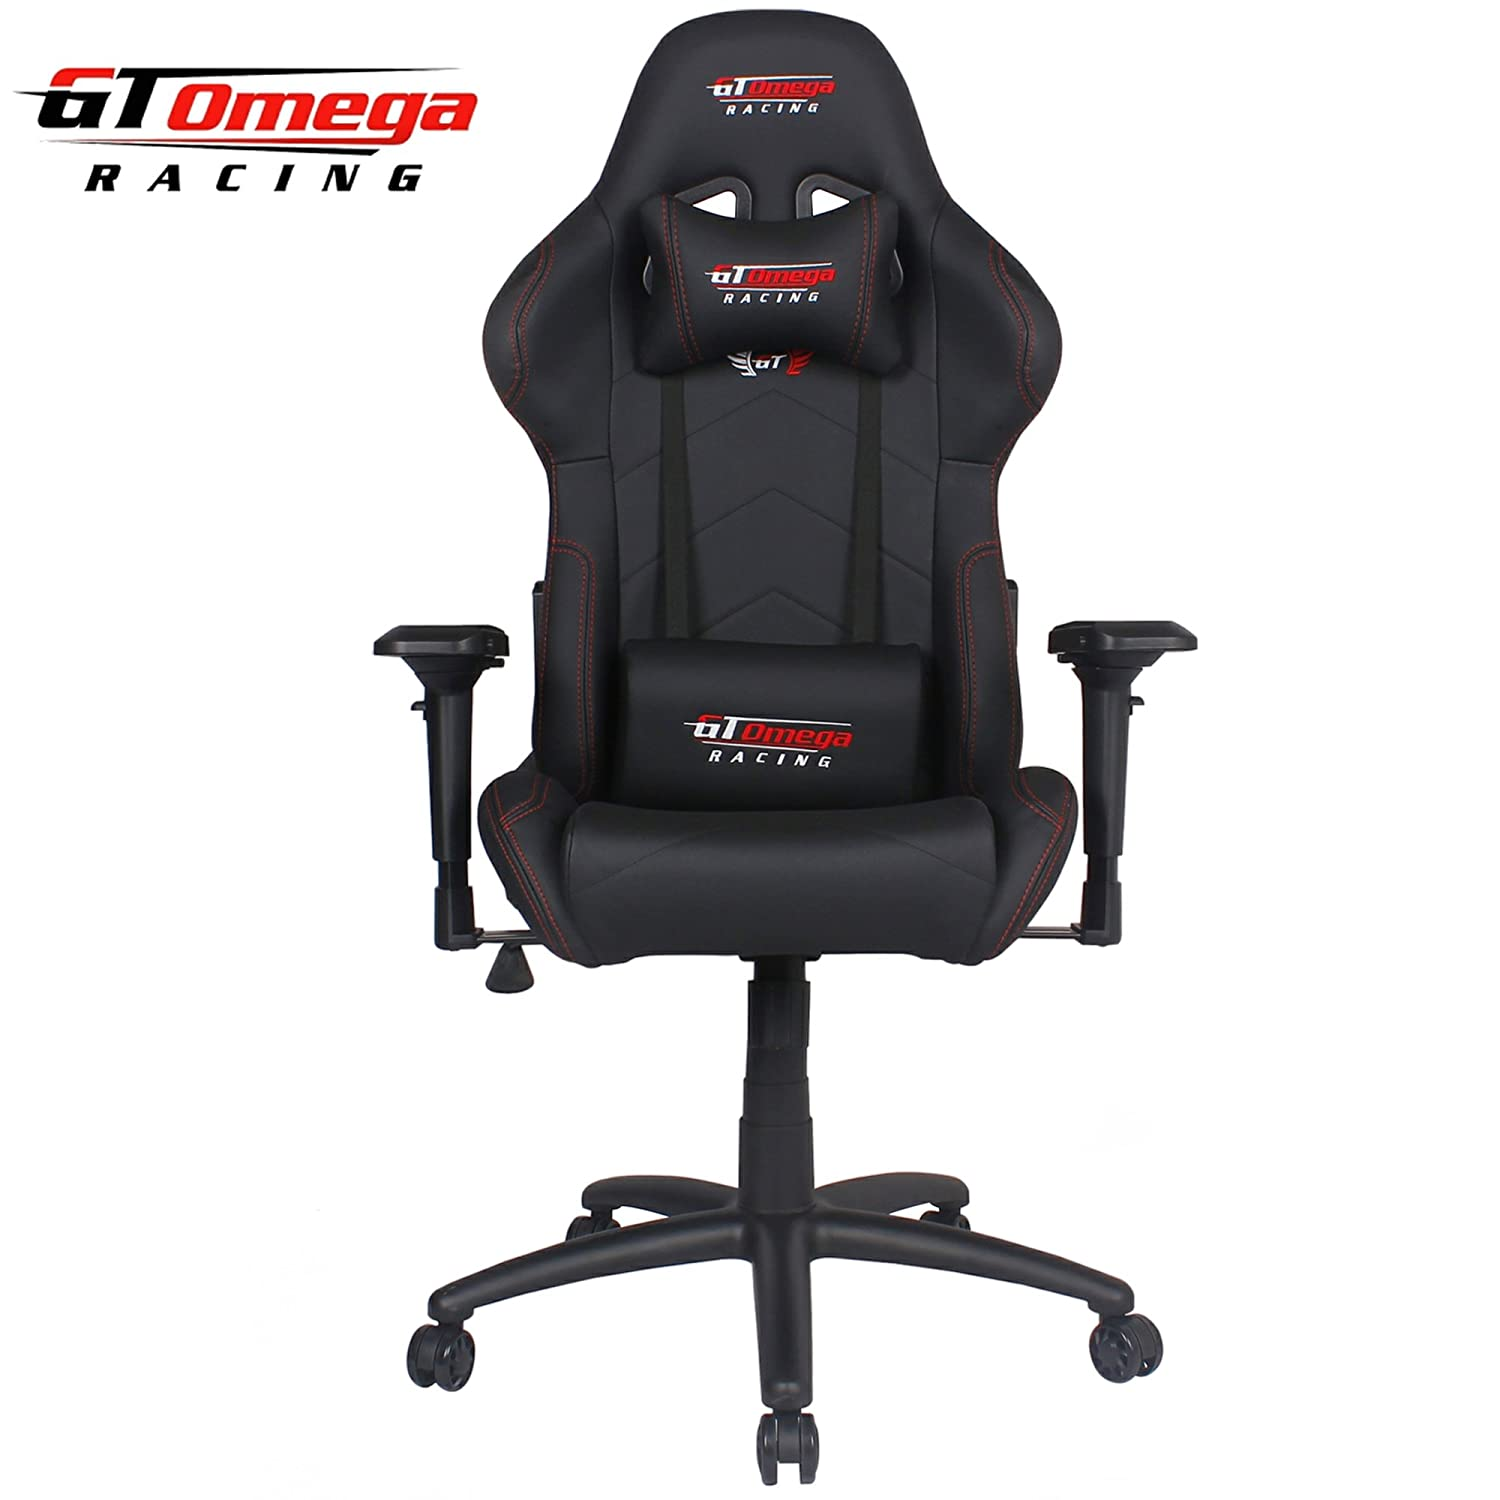 GT OMEGA PRO RACING OFFICE CHAIR BLACK LEATHER Amazon